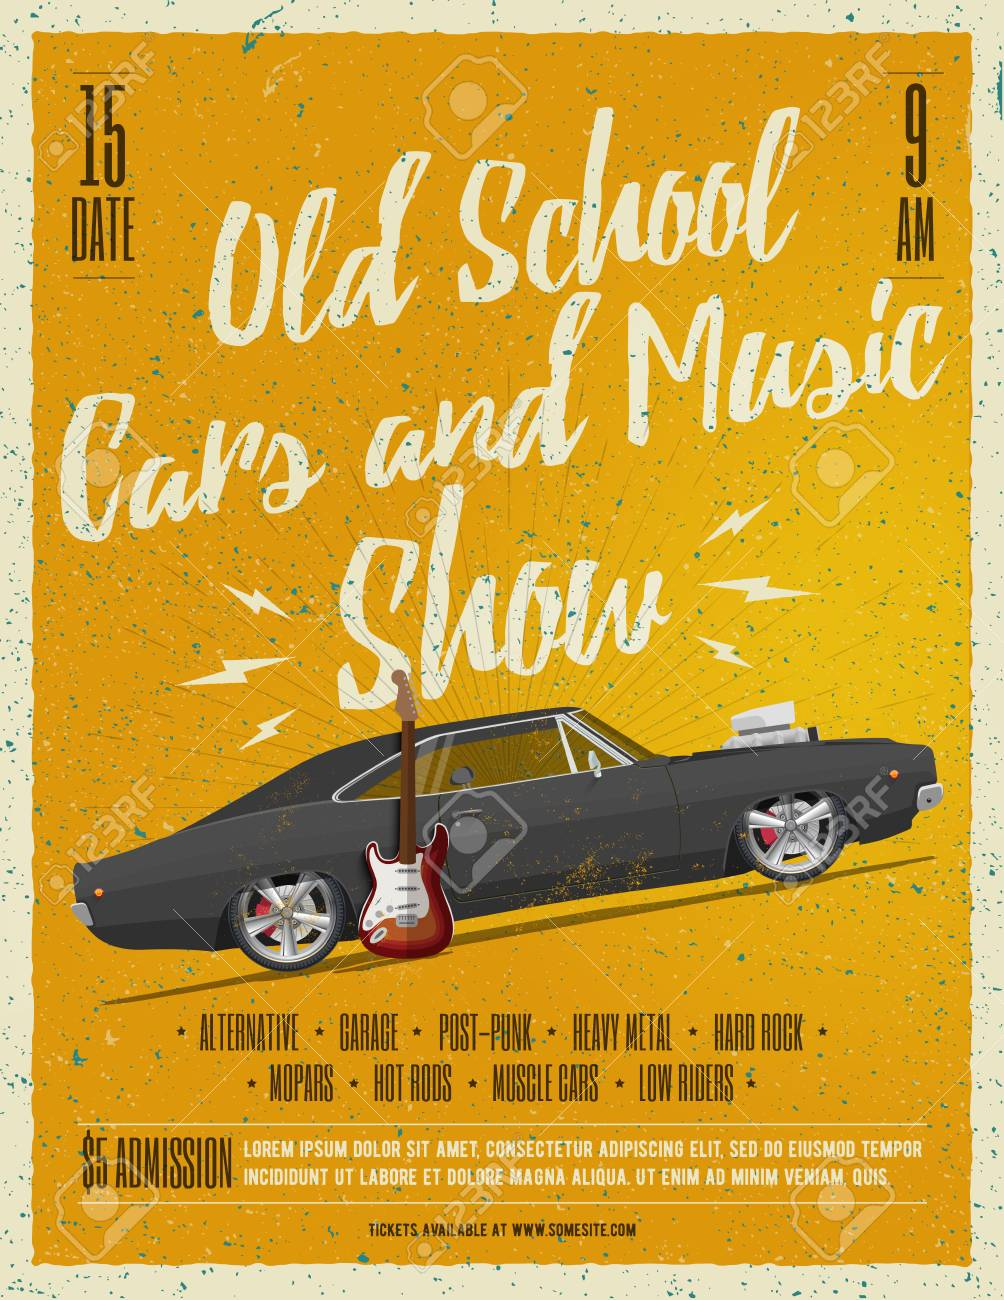 Old School Cars And Music Show Poster. Flyer. Vintage Styled ...